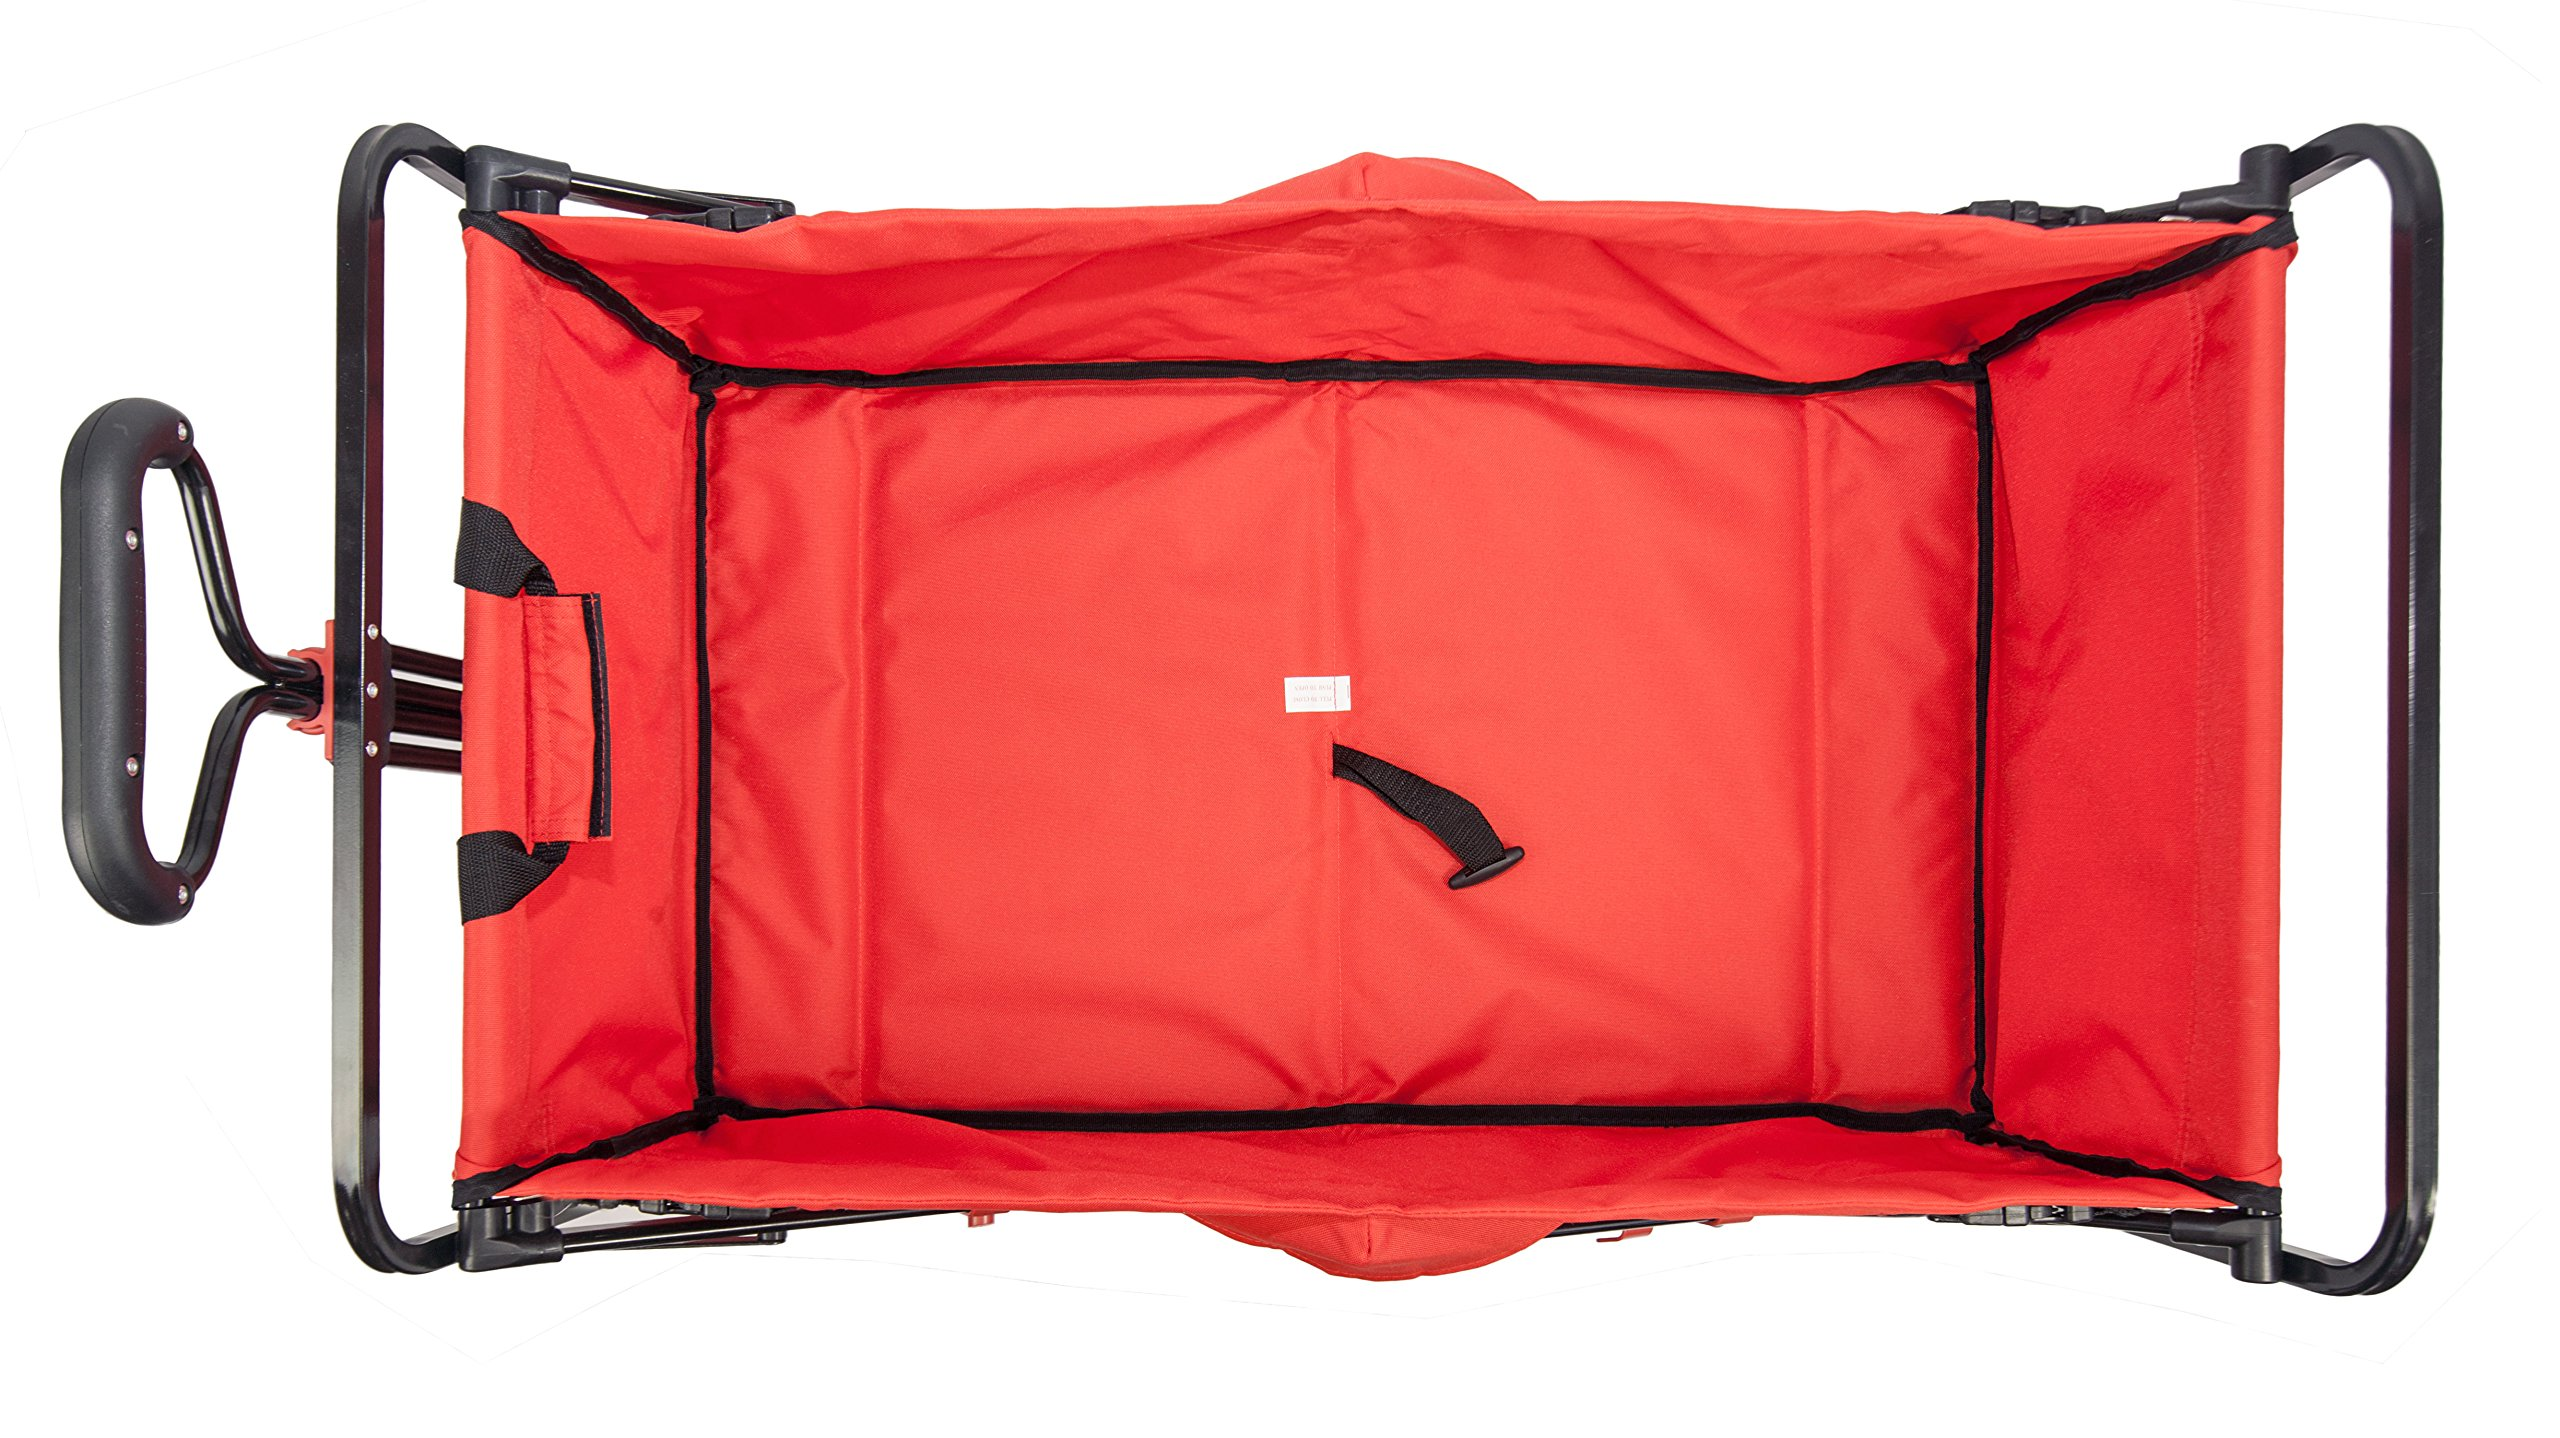 Wonder Fold Outdoor Next Generation Utility Folding Wagon with Removable Polyester Bag, Spring Bounce Feature, Auto Safety Locks, 180 Degree Steering Telescoping Handle Performance, Scarlet Red by WonderFold Outdoor (Image #3)